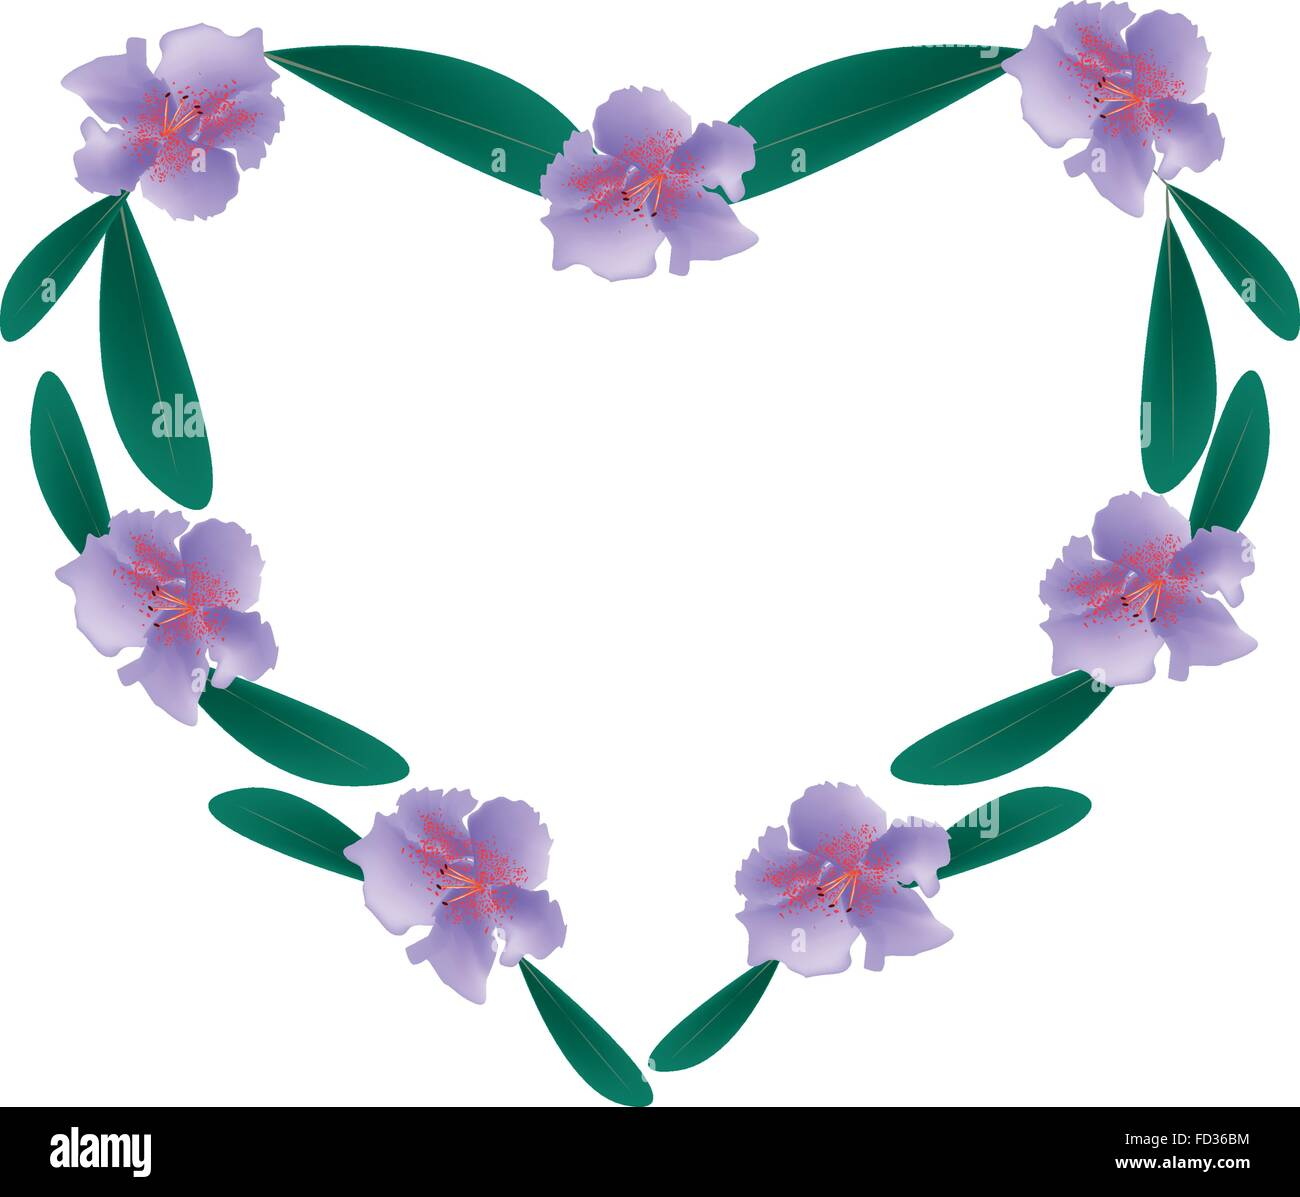 Love Concept, Illustration of Purple Rhododendron Flowers Forming in Heart Shape Isolated on White Background. - Stock Vector